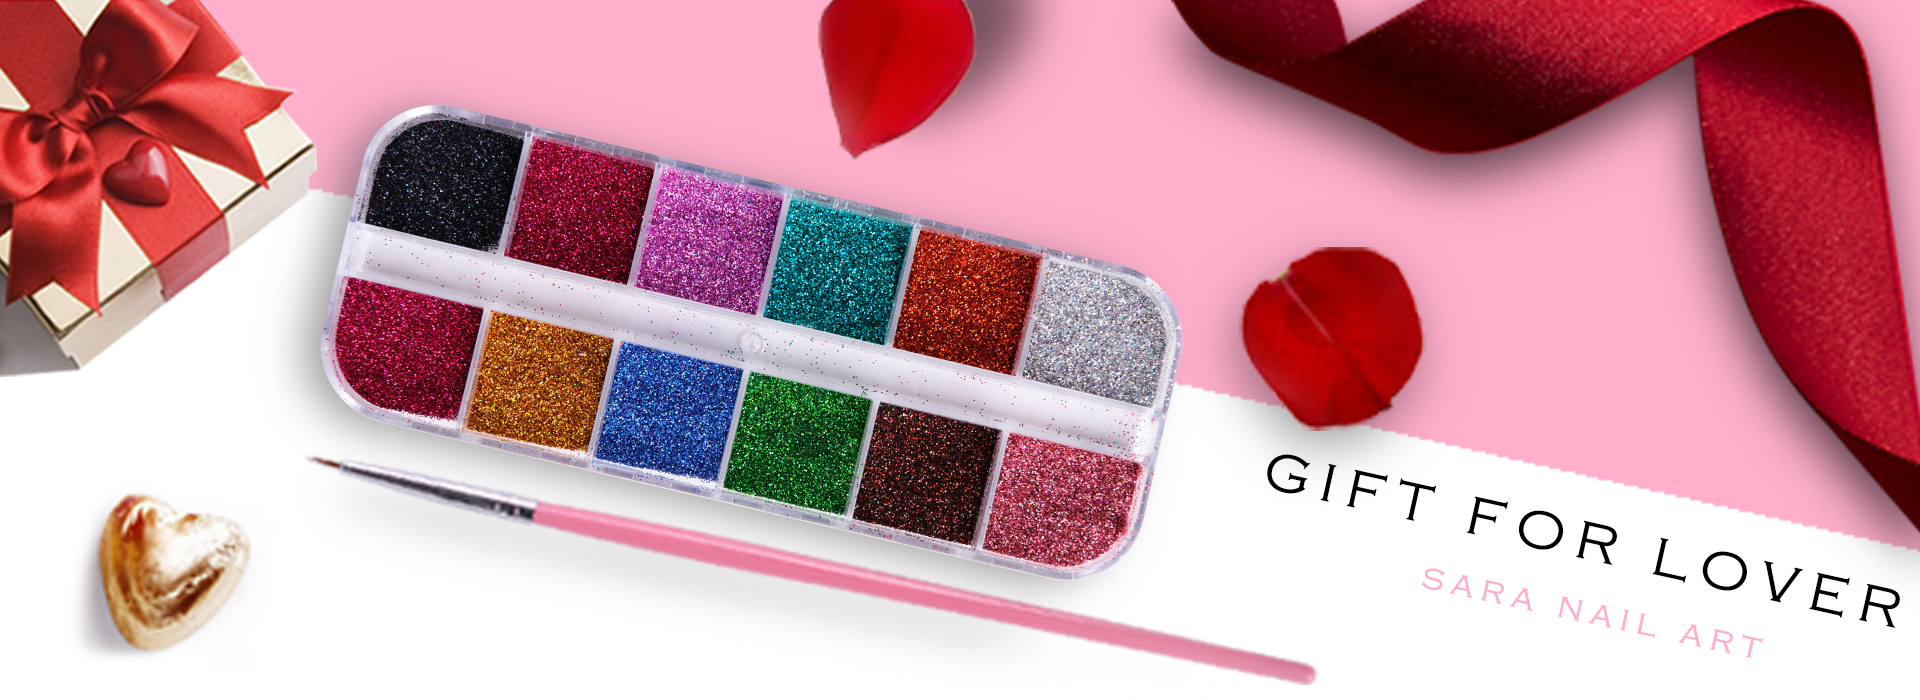 Sara Nail Art Products Wholesale - Small Orders Online Store, Hot ...